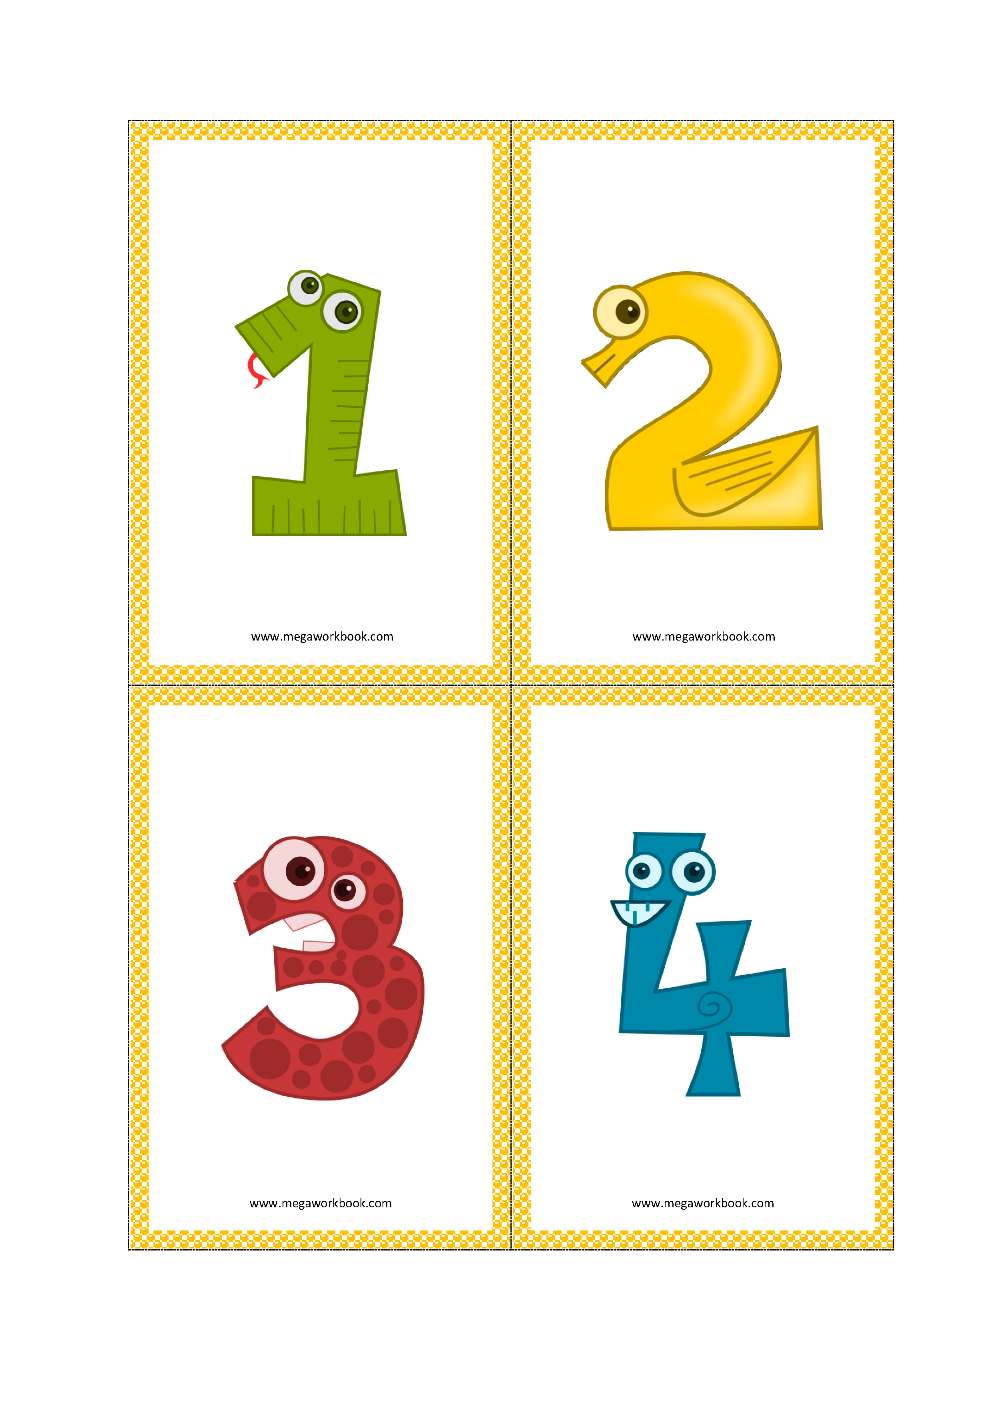 image relating to Free Printable Number Cards 1-20 referred to as Selection Flashcards - Quantity Flashcards Printable Free of charge - (1 in direction of